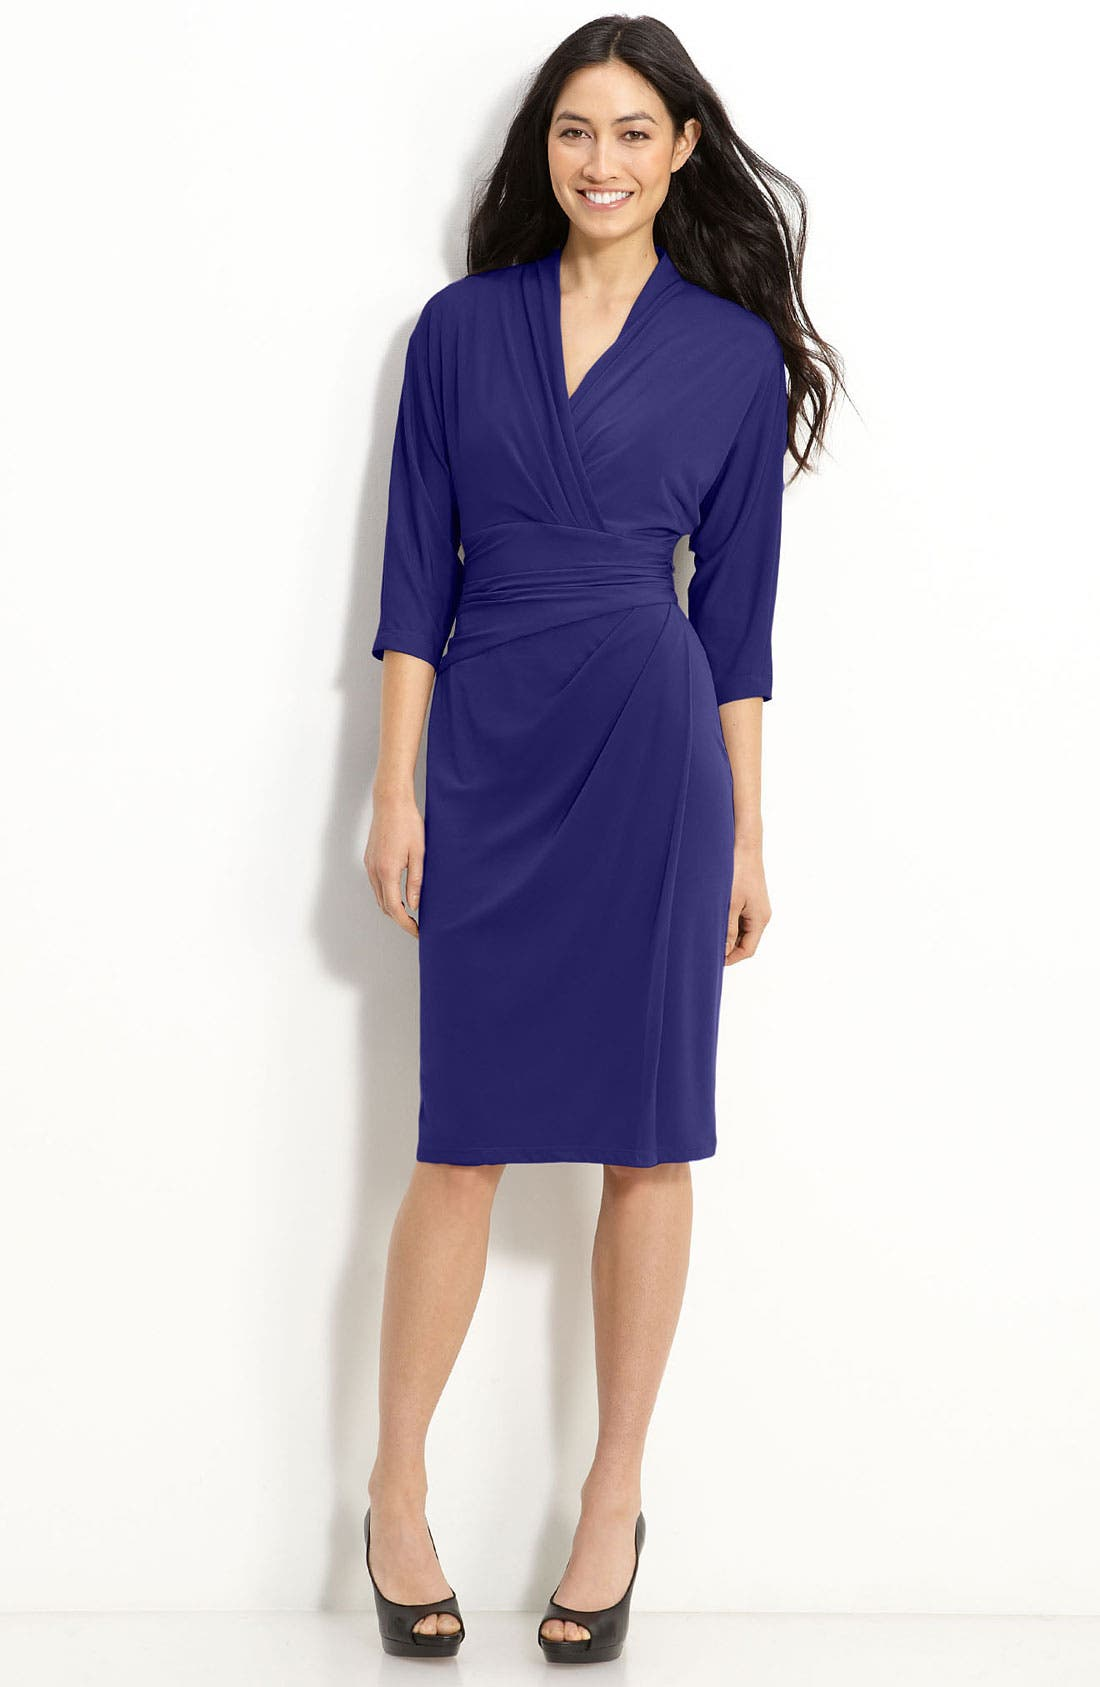 Main Image - Suzi Chin for Maggy Boutique Faux Wrap Jersey Dress